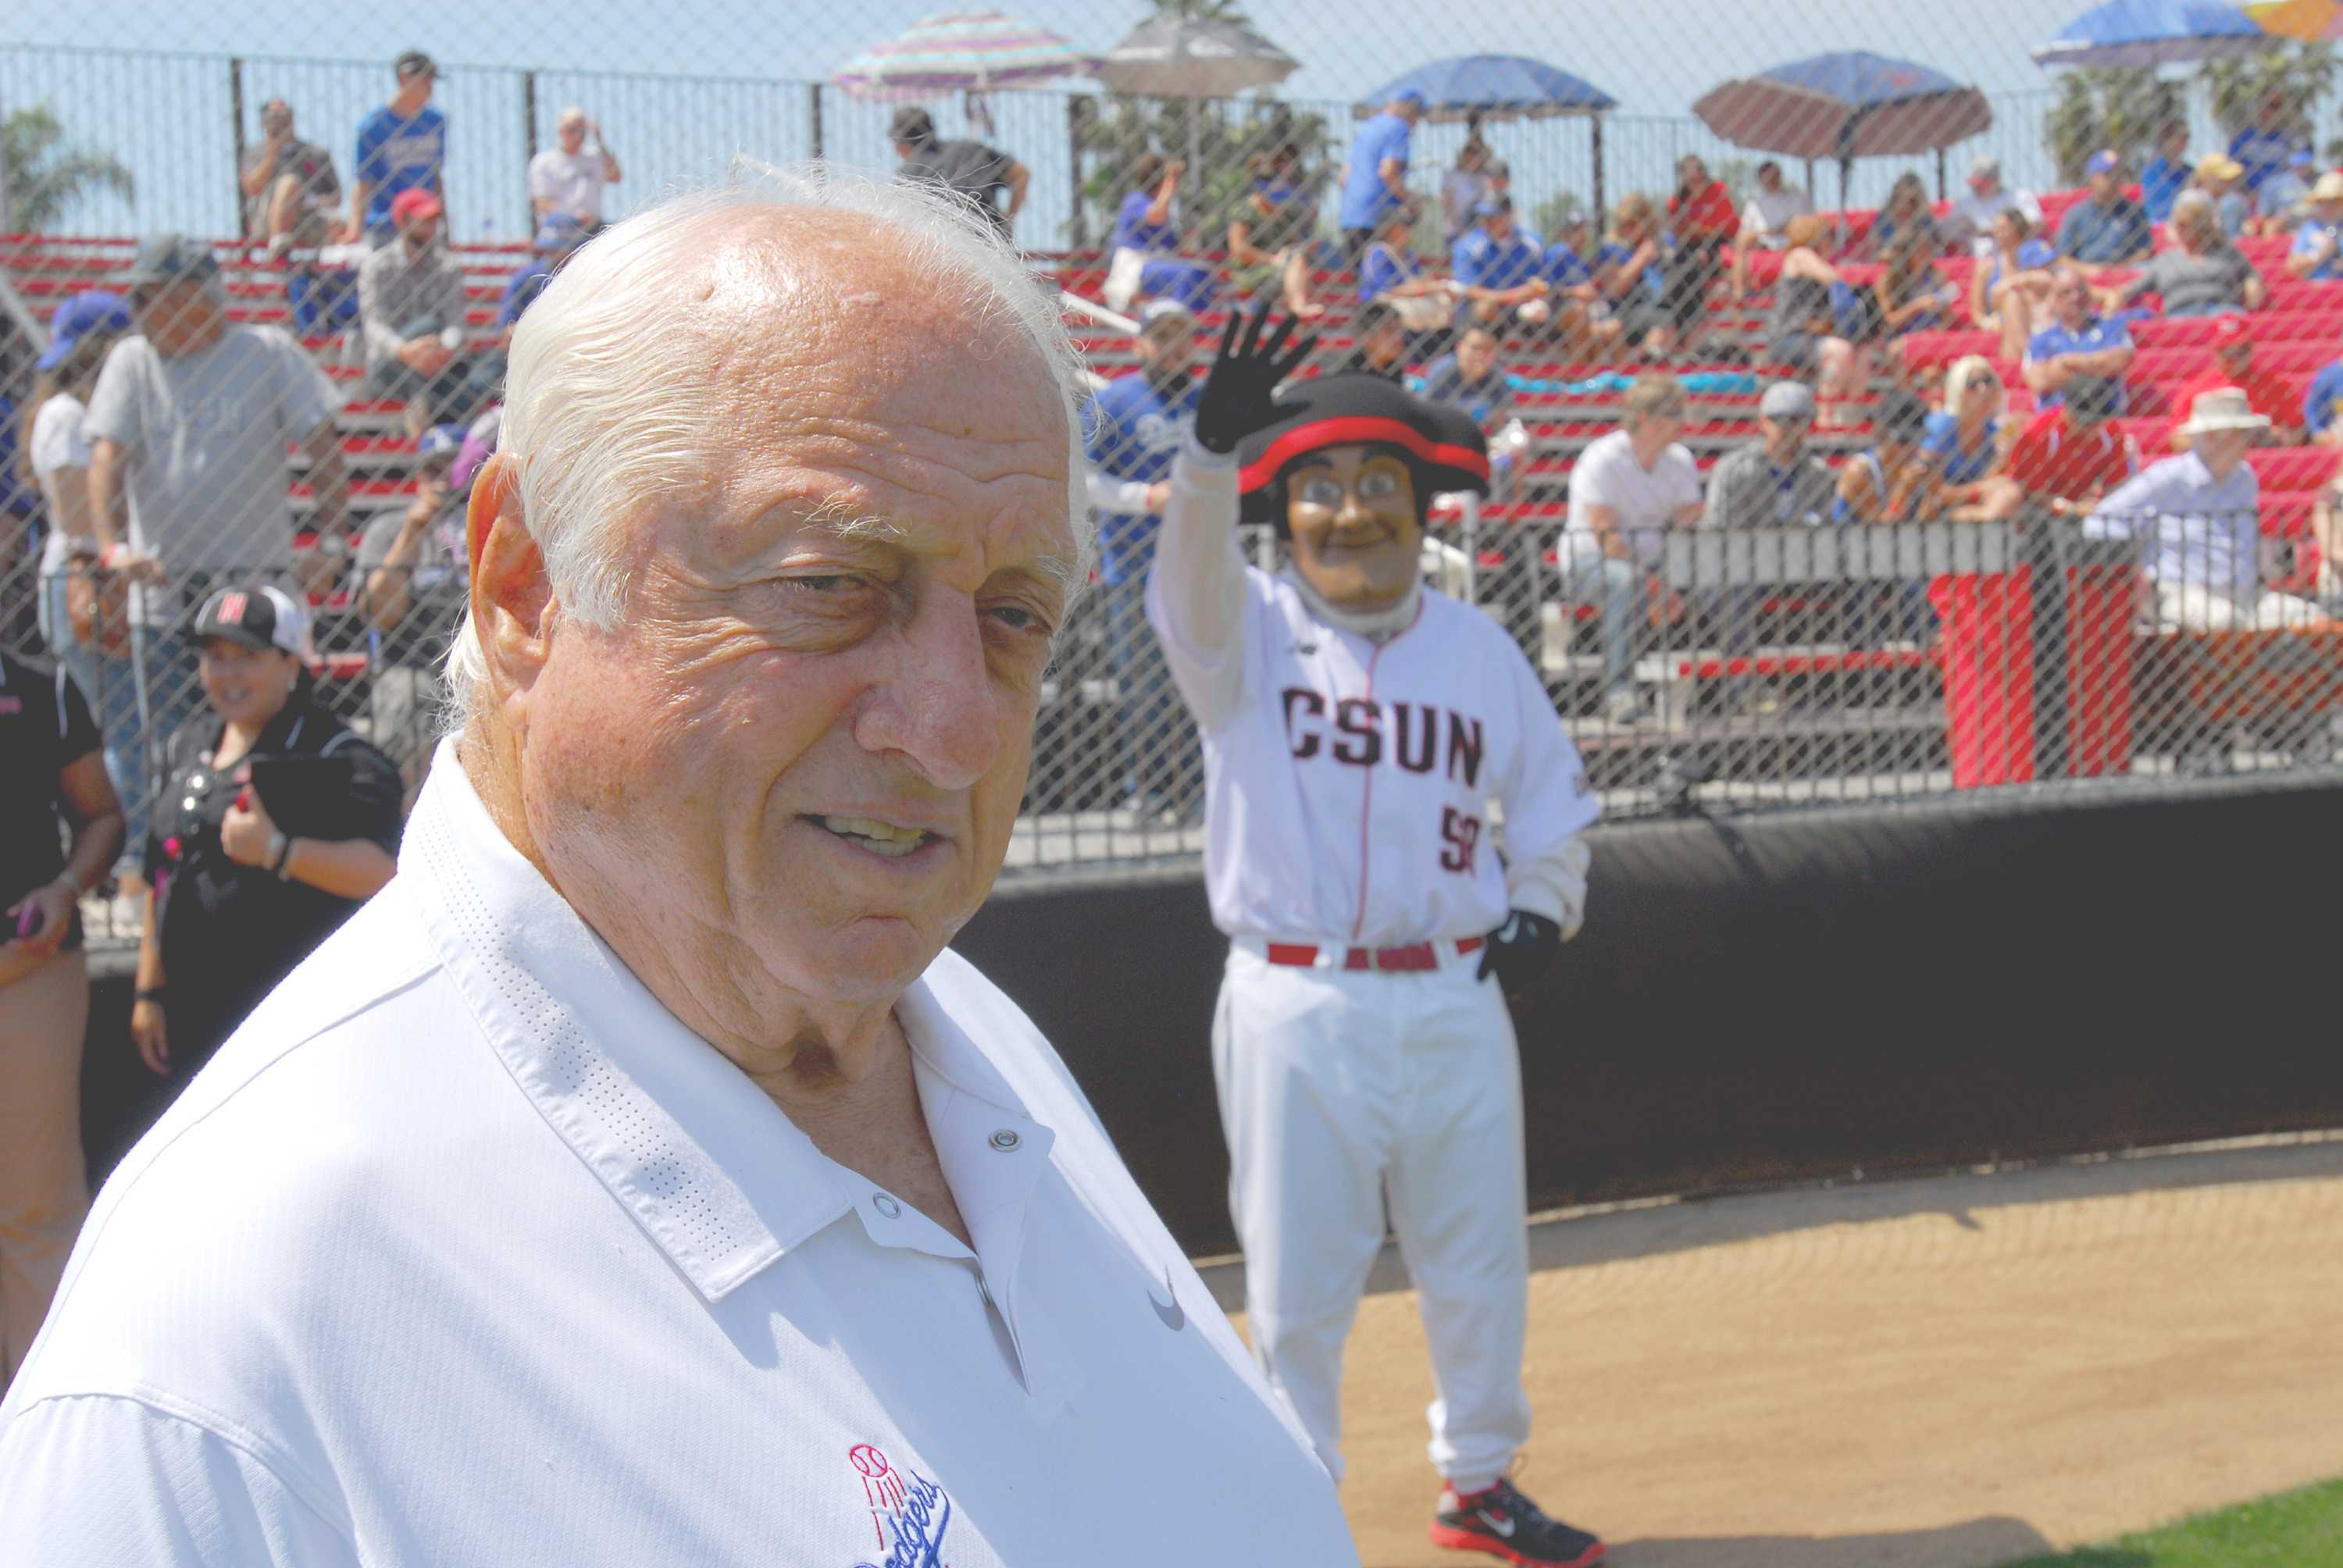 Los+Angeles+Dodgers+legend+Tommy+Lasorda+visited+CSUN+during+the+Matadors%27+baseball+game+against+UC+Santa+Barbara+on+Saturday%2C+April+11.+Photo+credit%3A+Michael+Arvizu